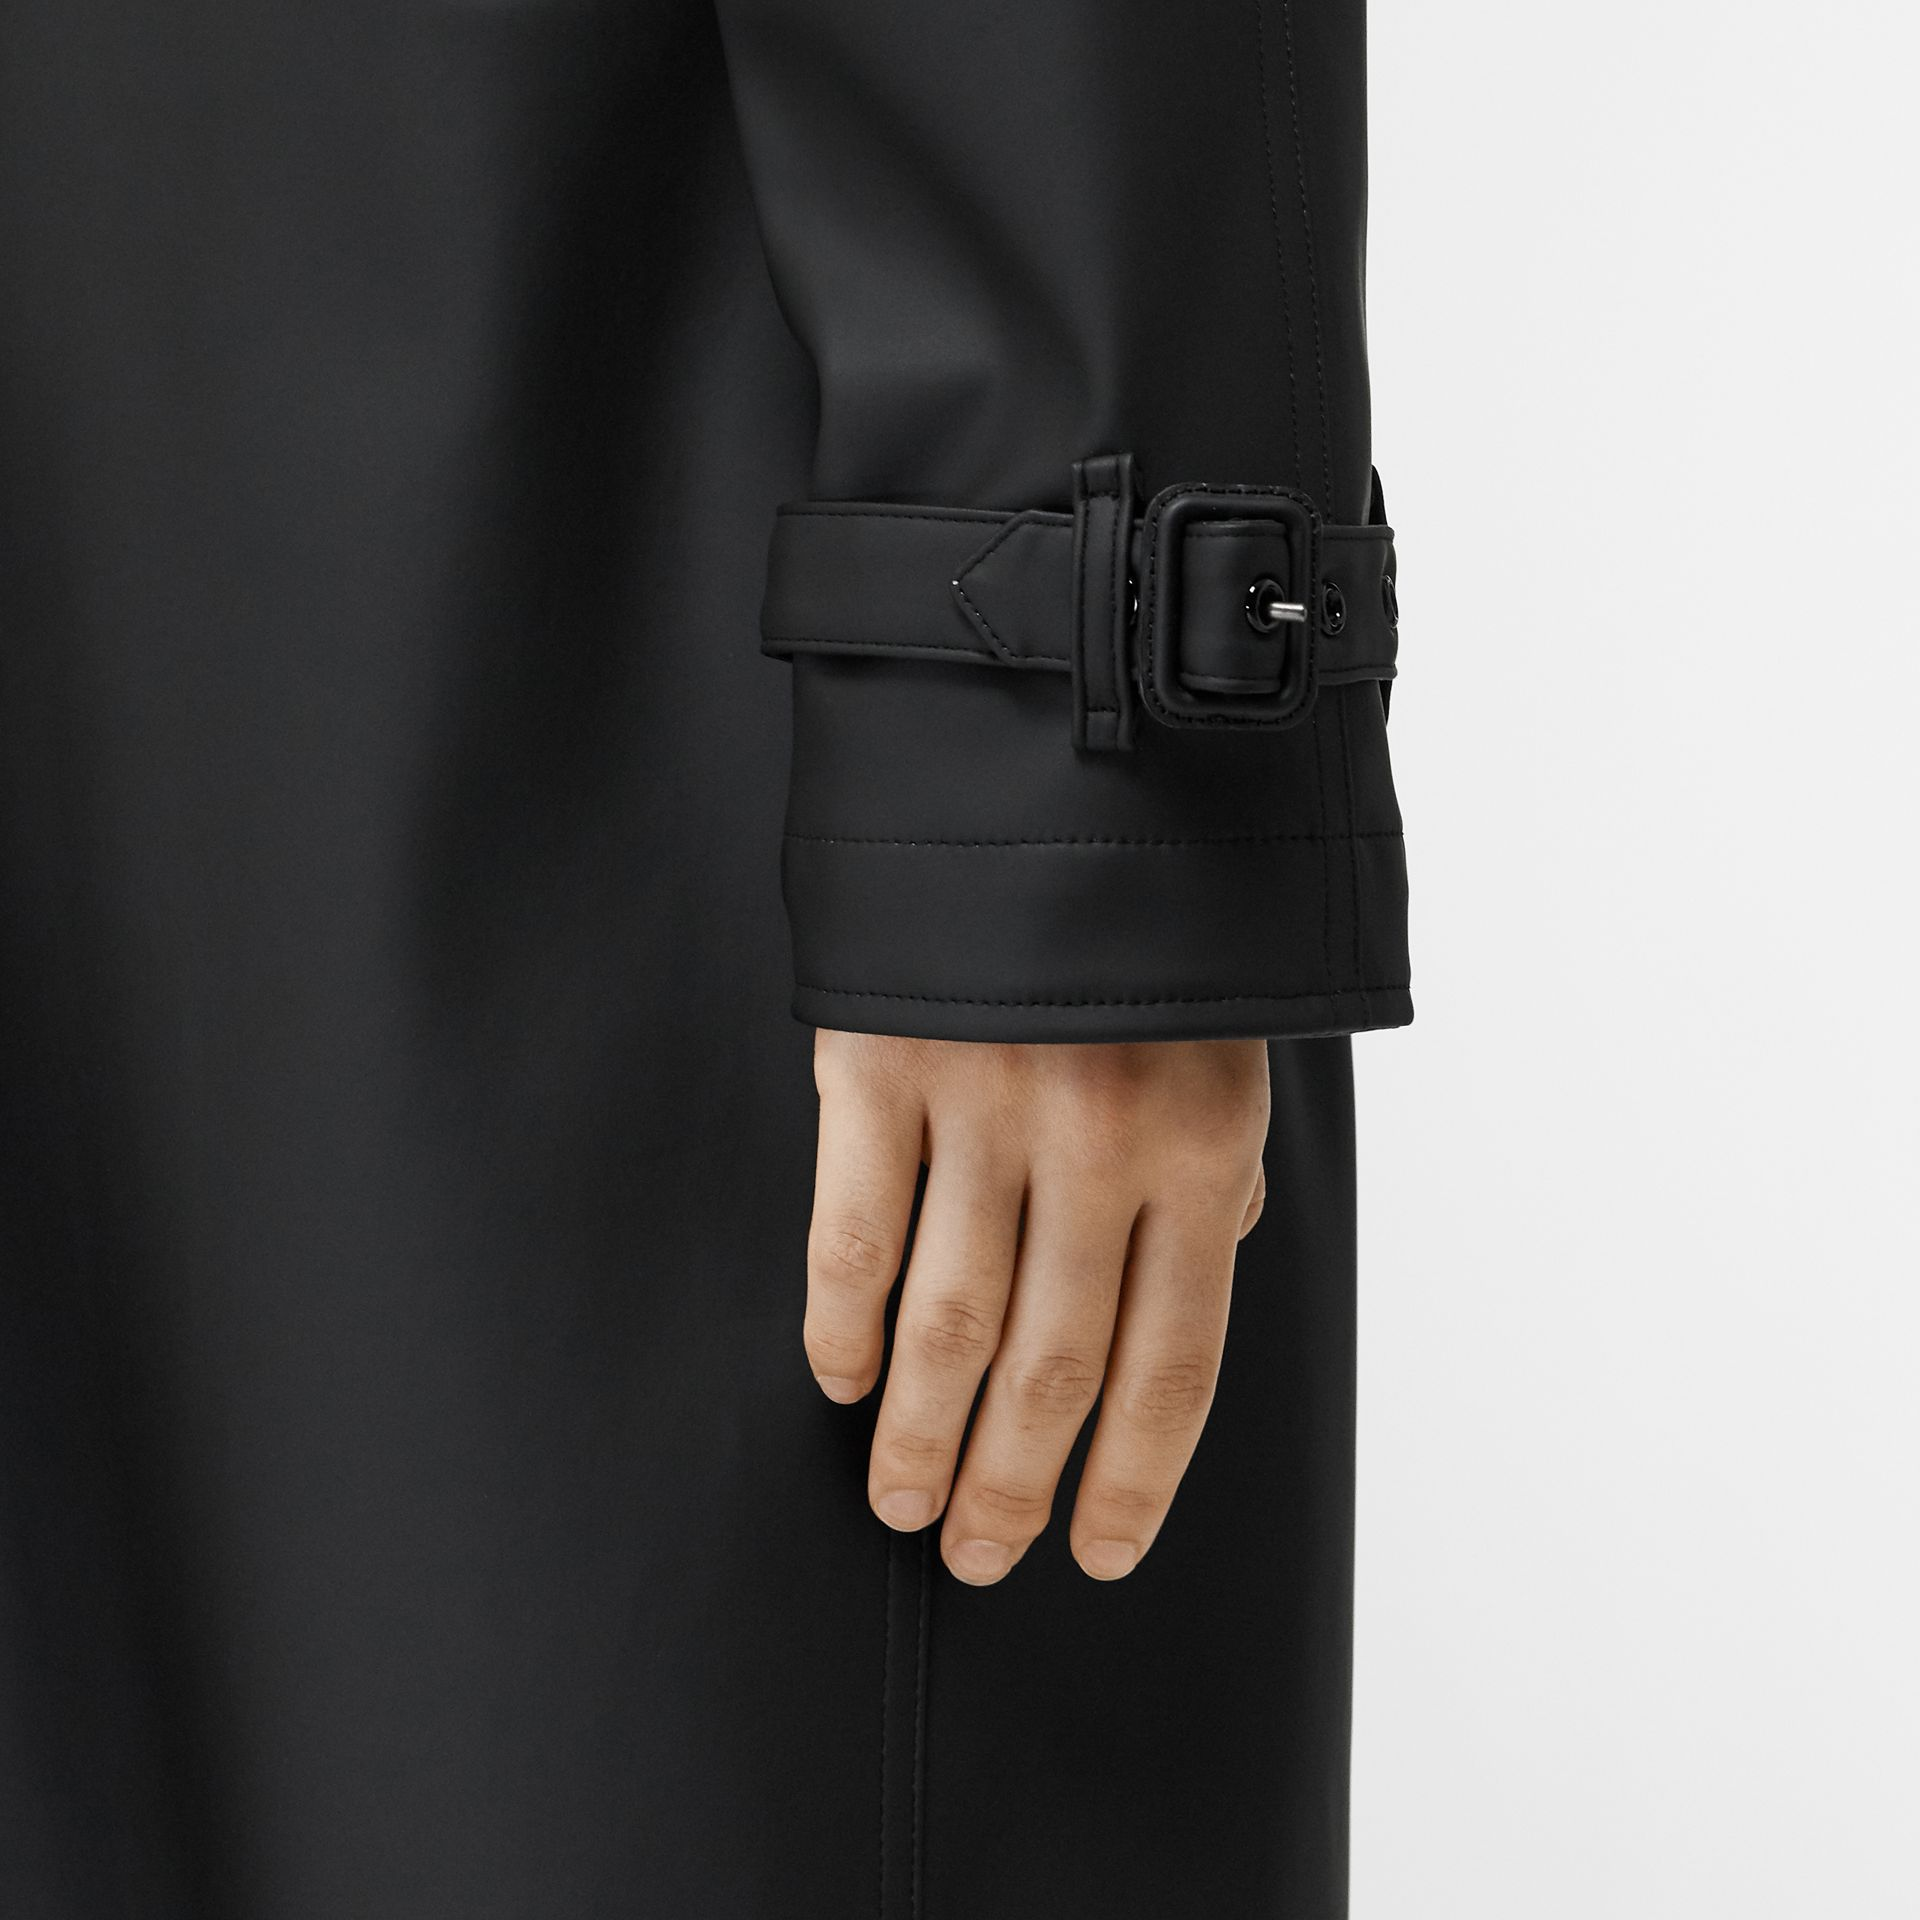 Logo Detail Showerproof Trench Coat in Black/white - Women | Burberry - gallery image 8